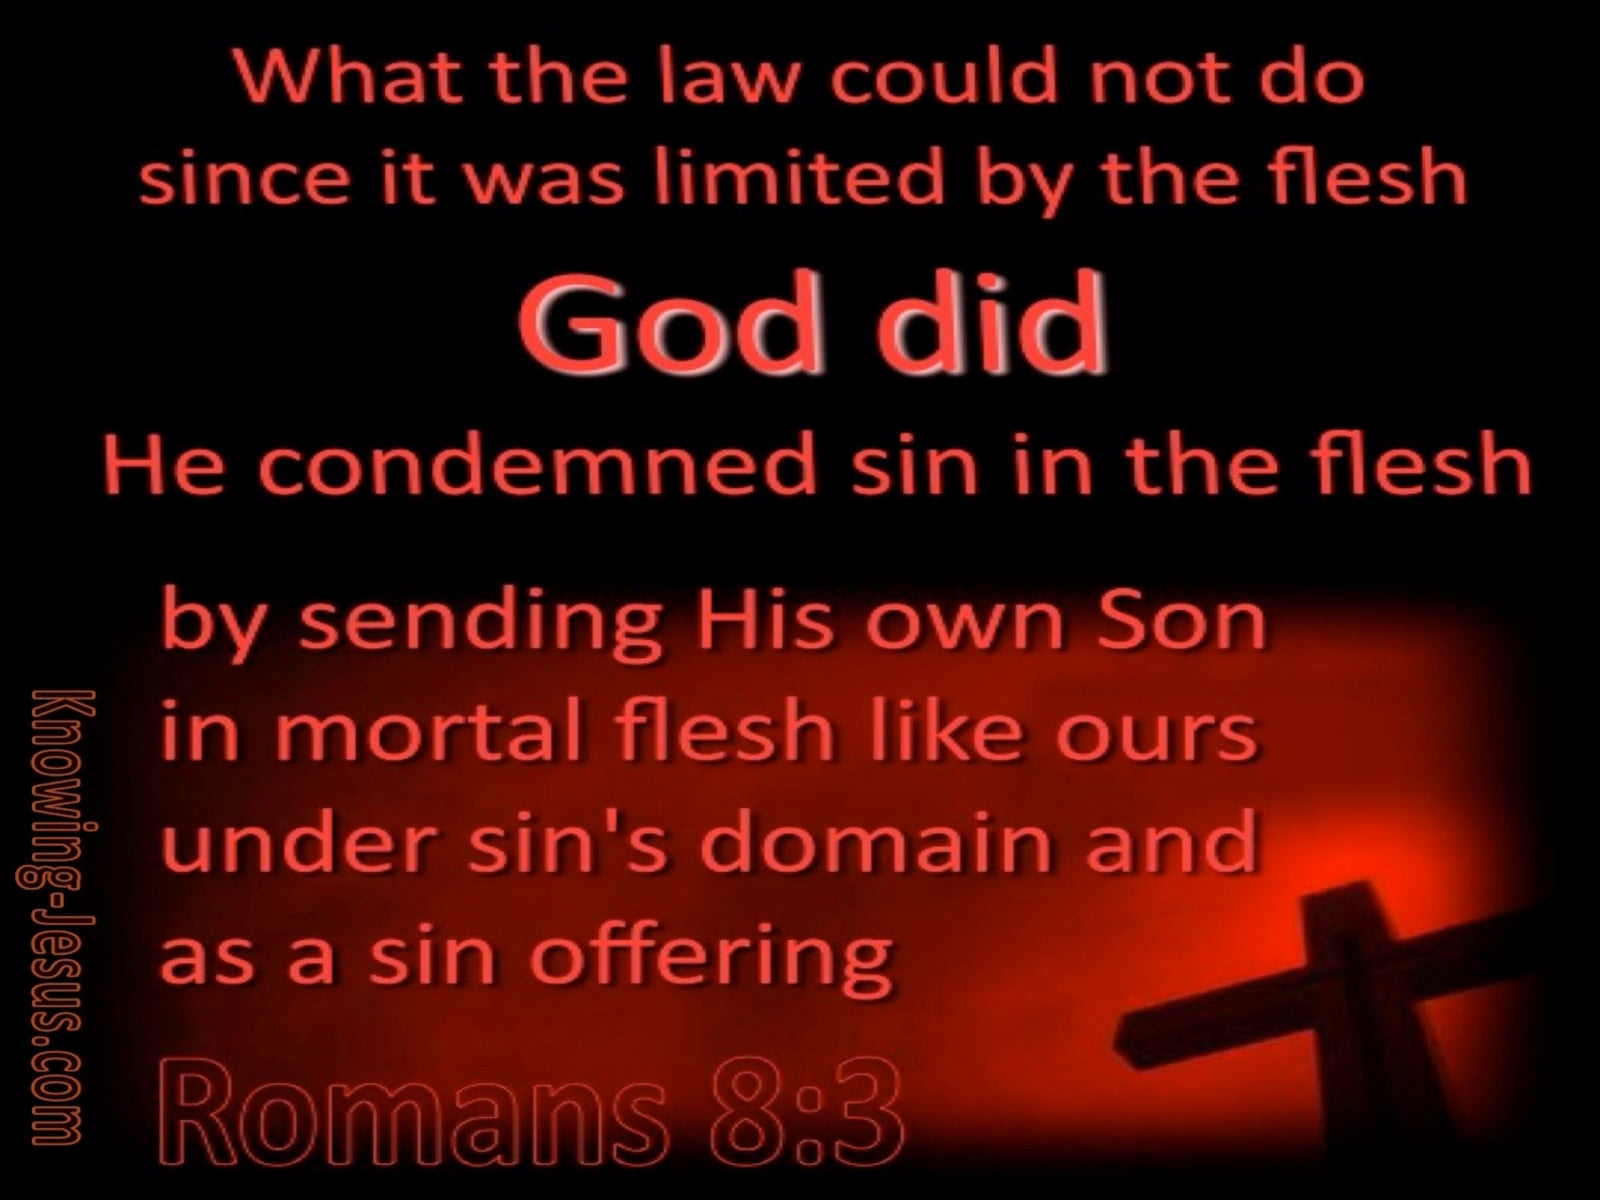 Romans 8:3 He Comdemned Sin In The Flesh (maroon)